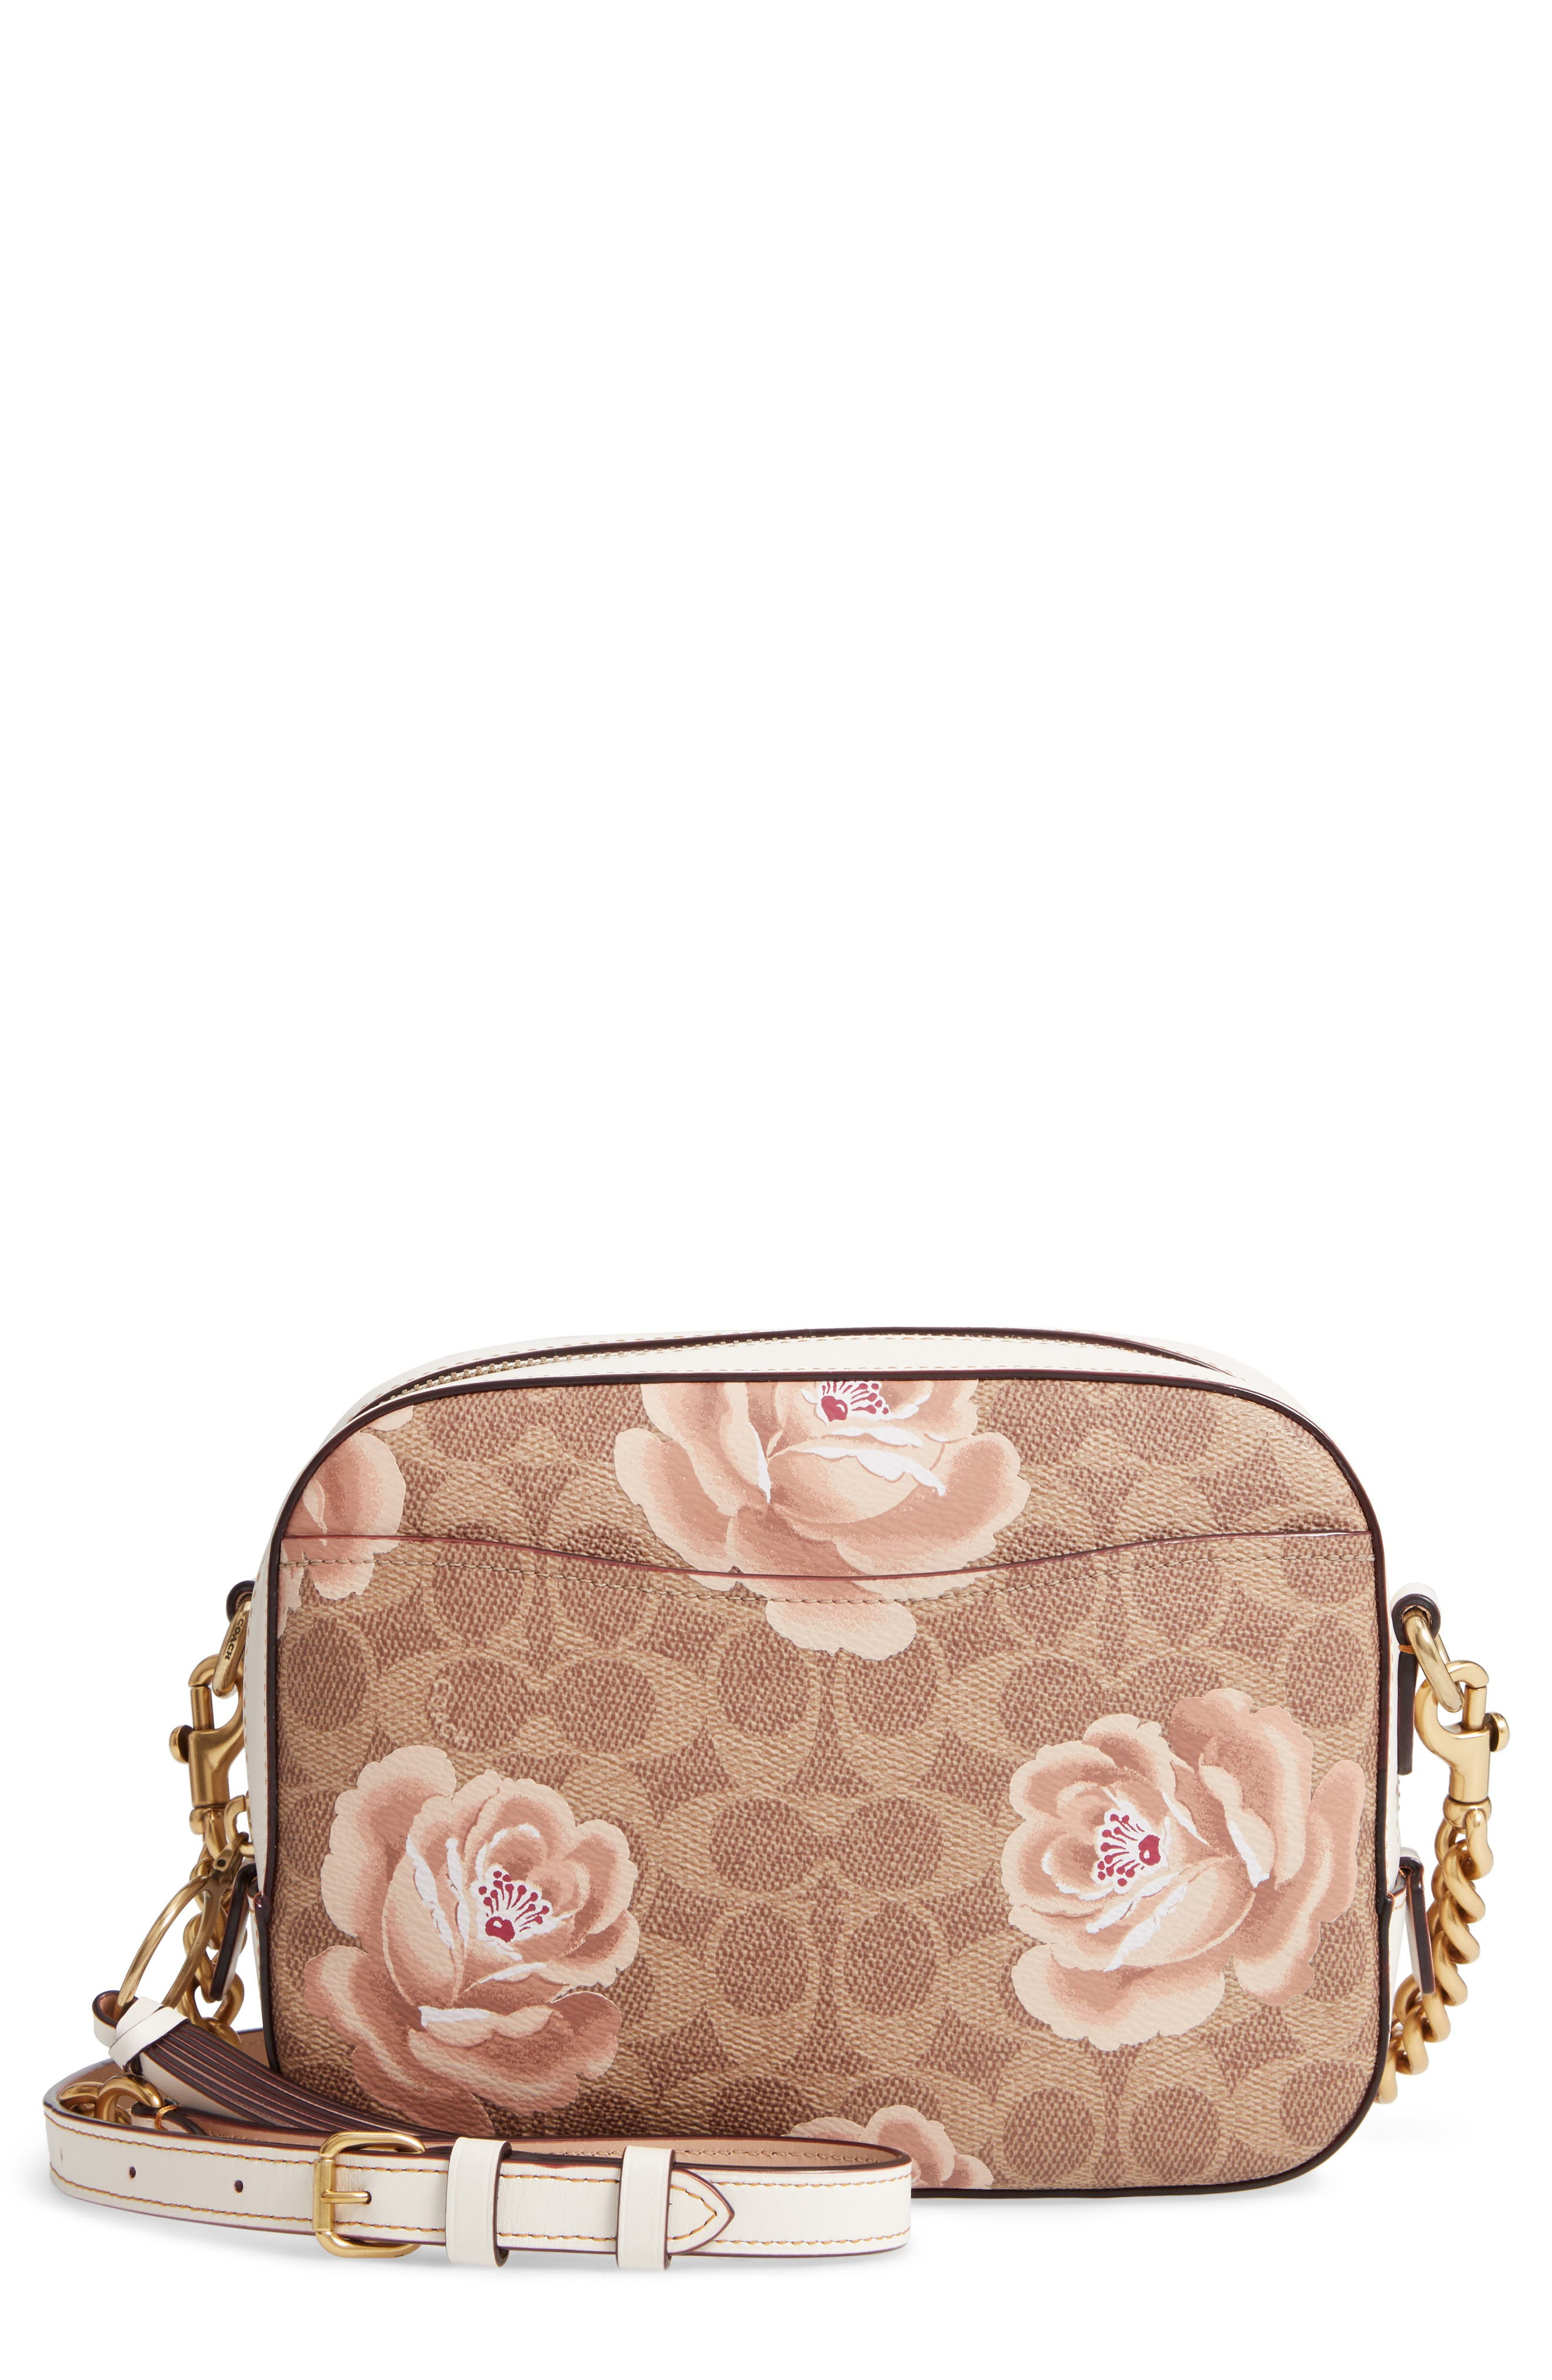 Signature Rose Coated Canvas Camera Bag,                         Main,                         color, 250